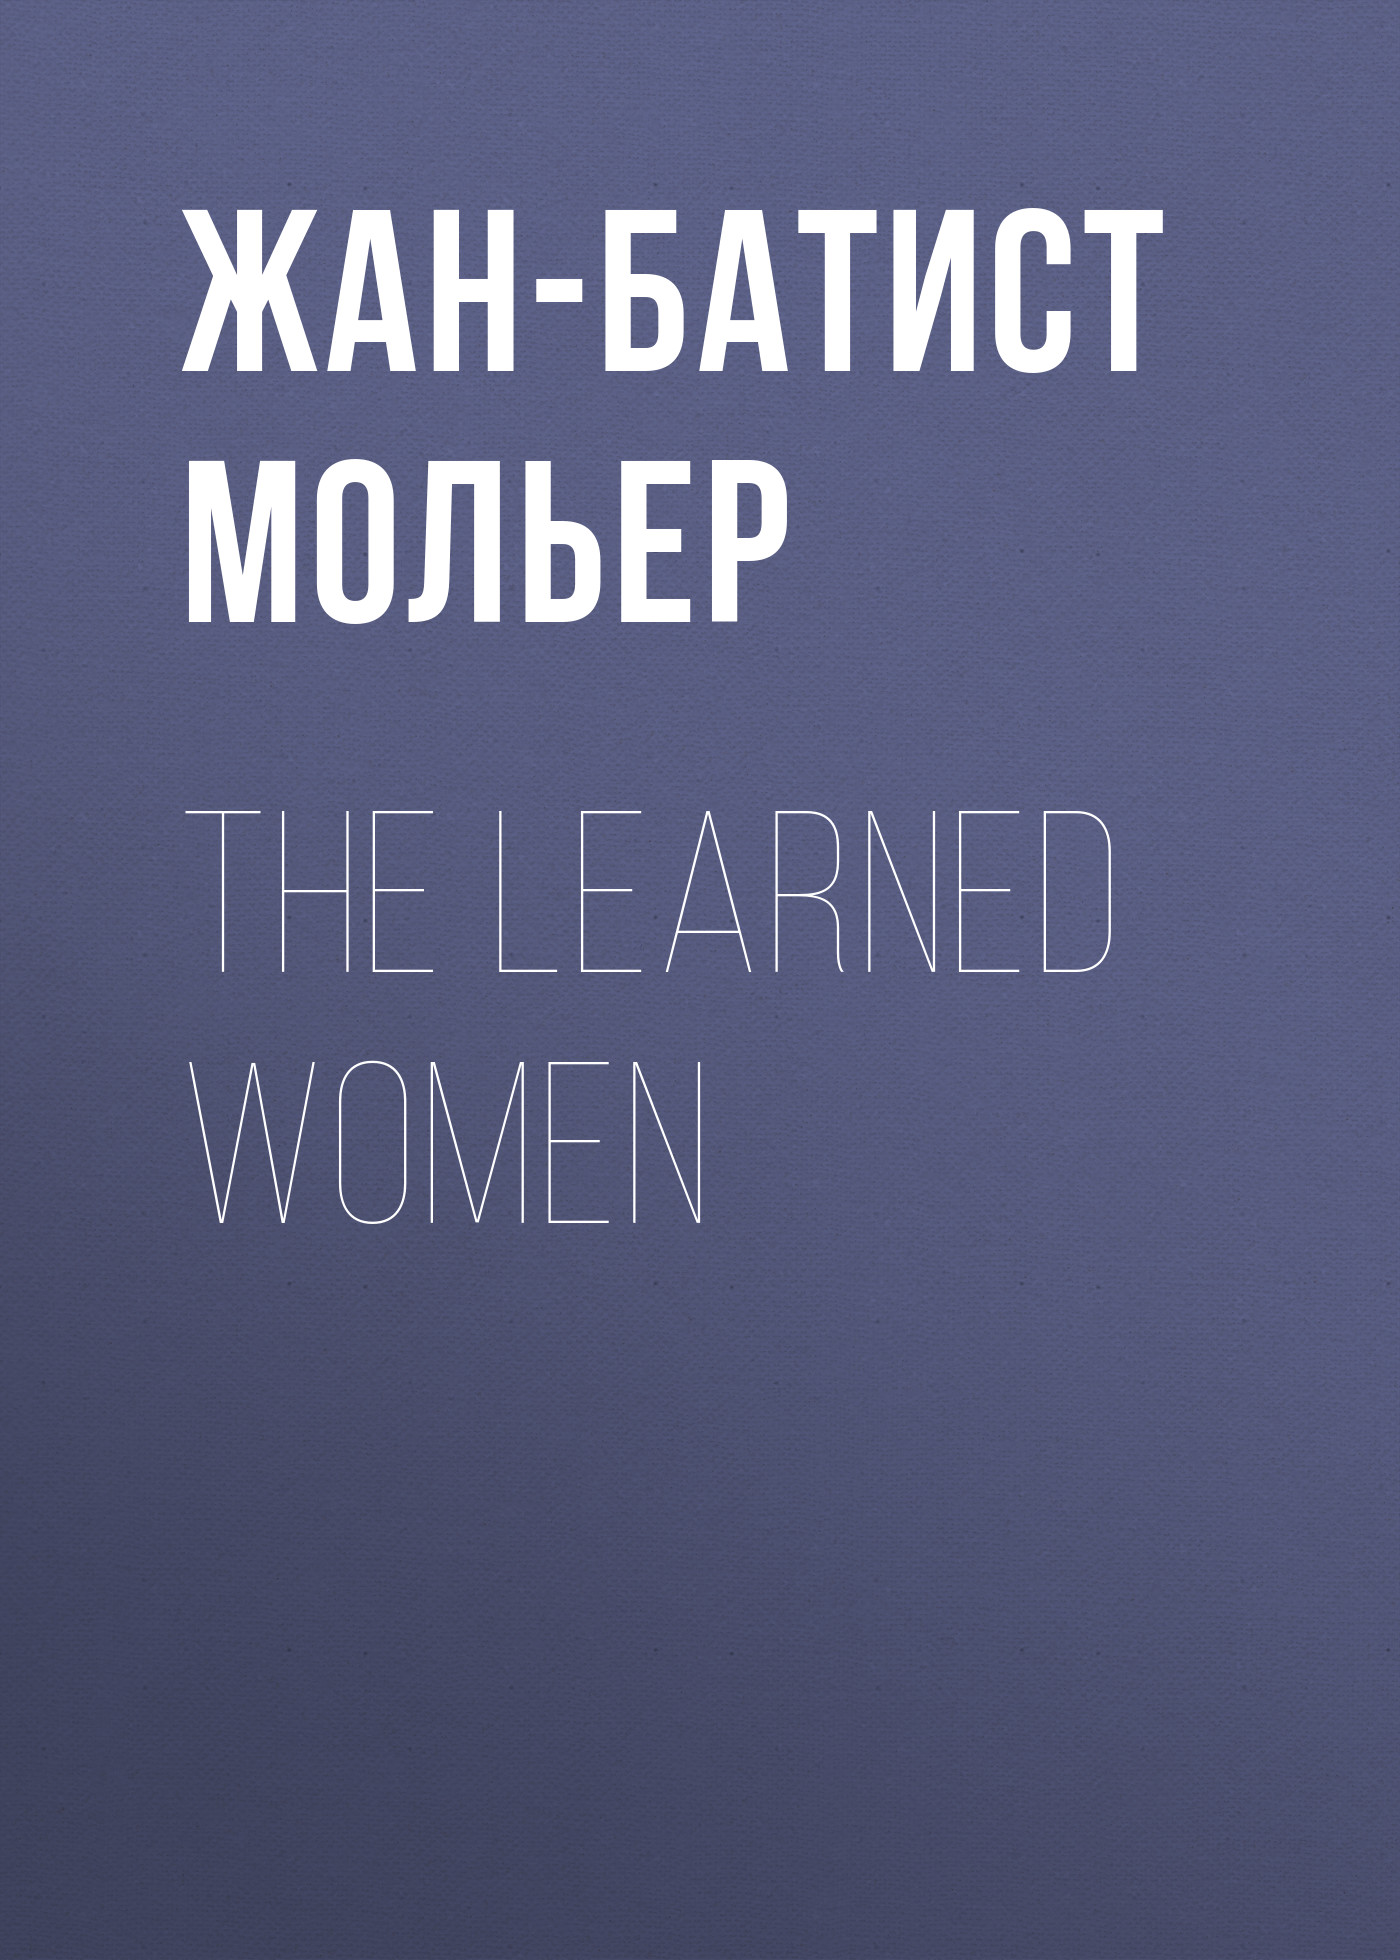 The Learned Women